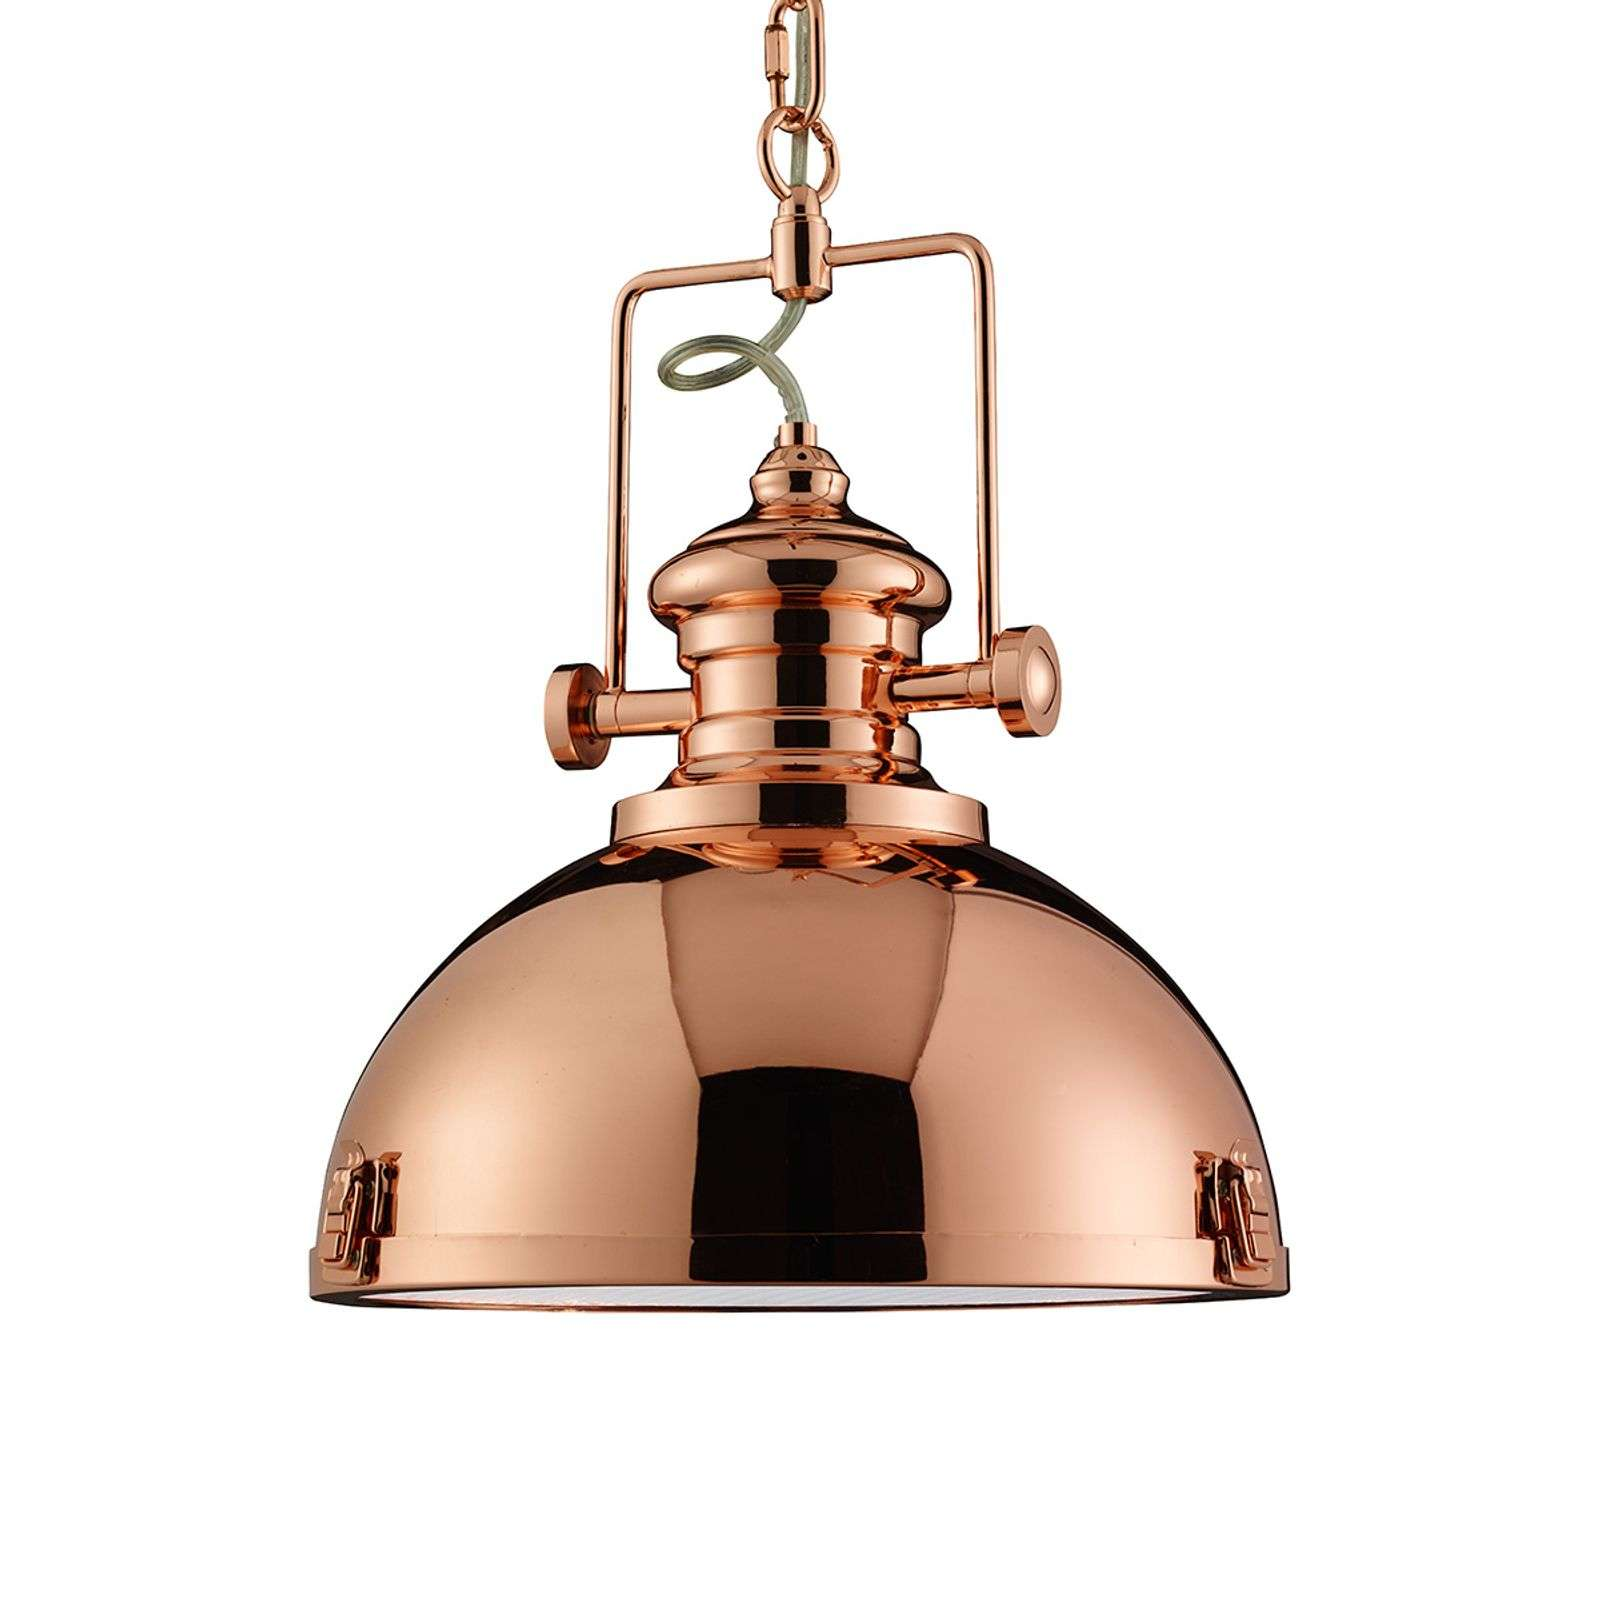 Lampada sosp Metal color rame design industriale